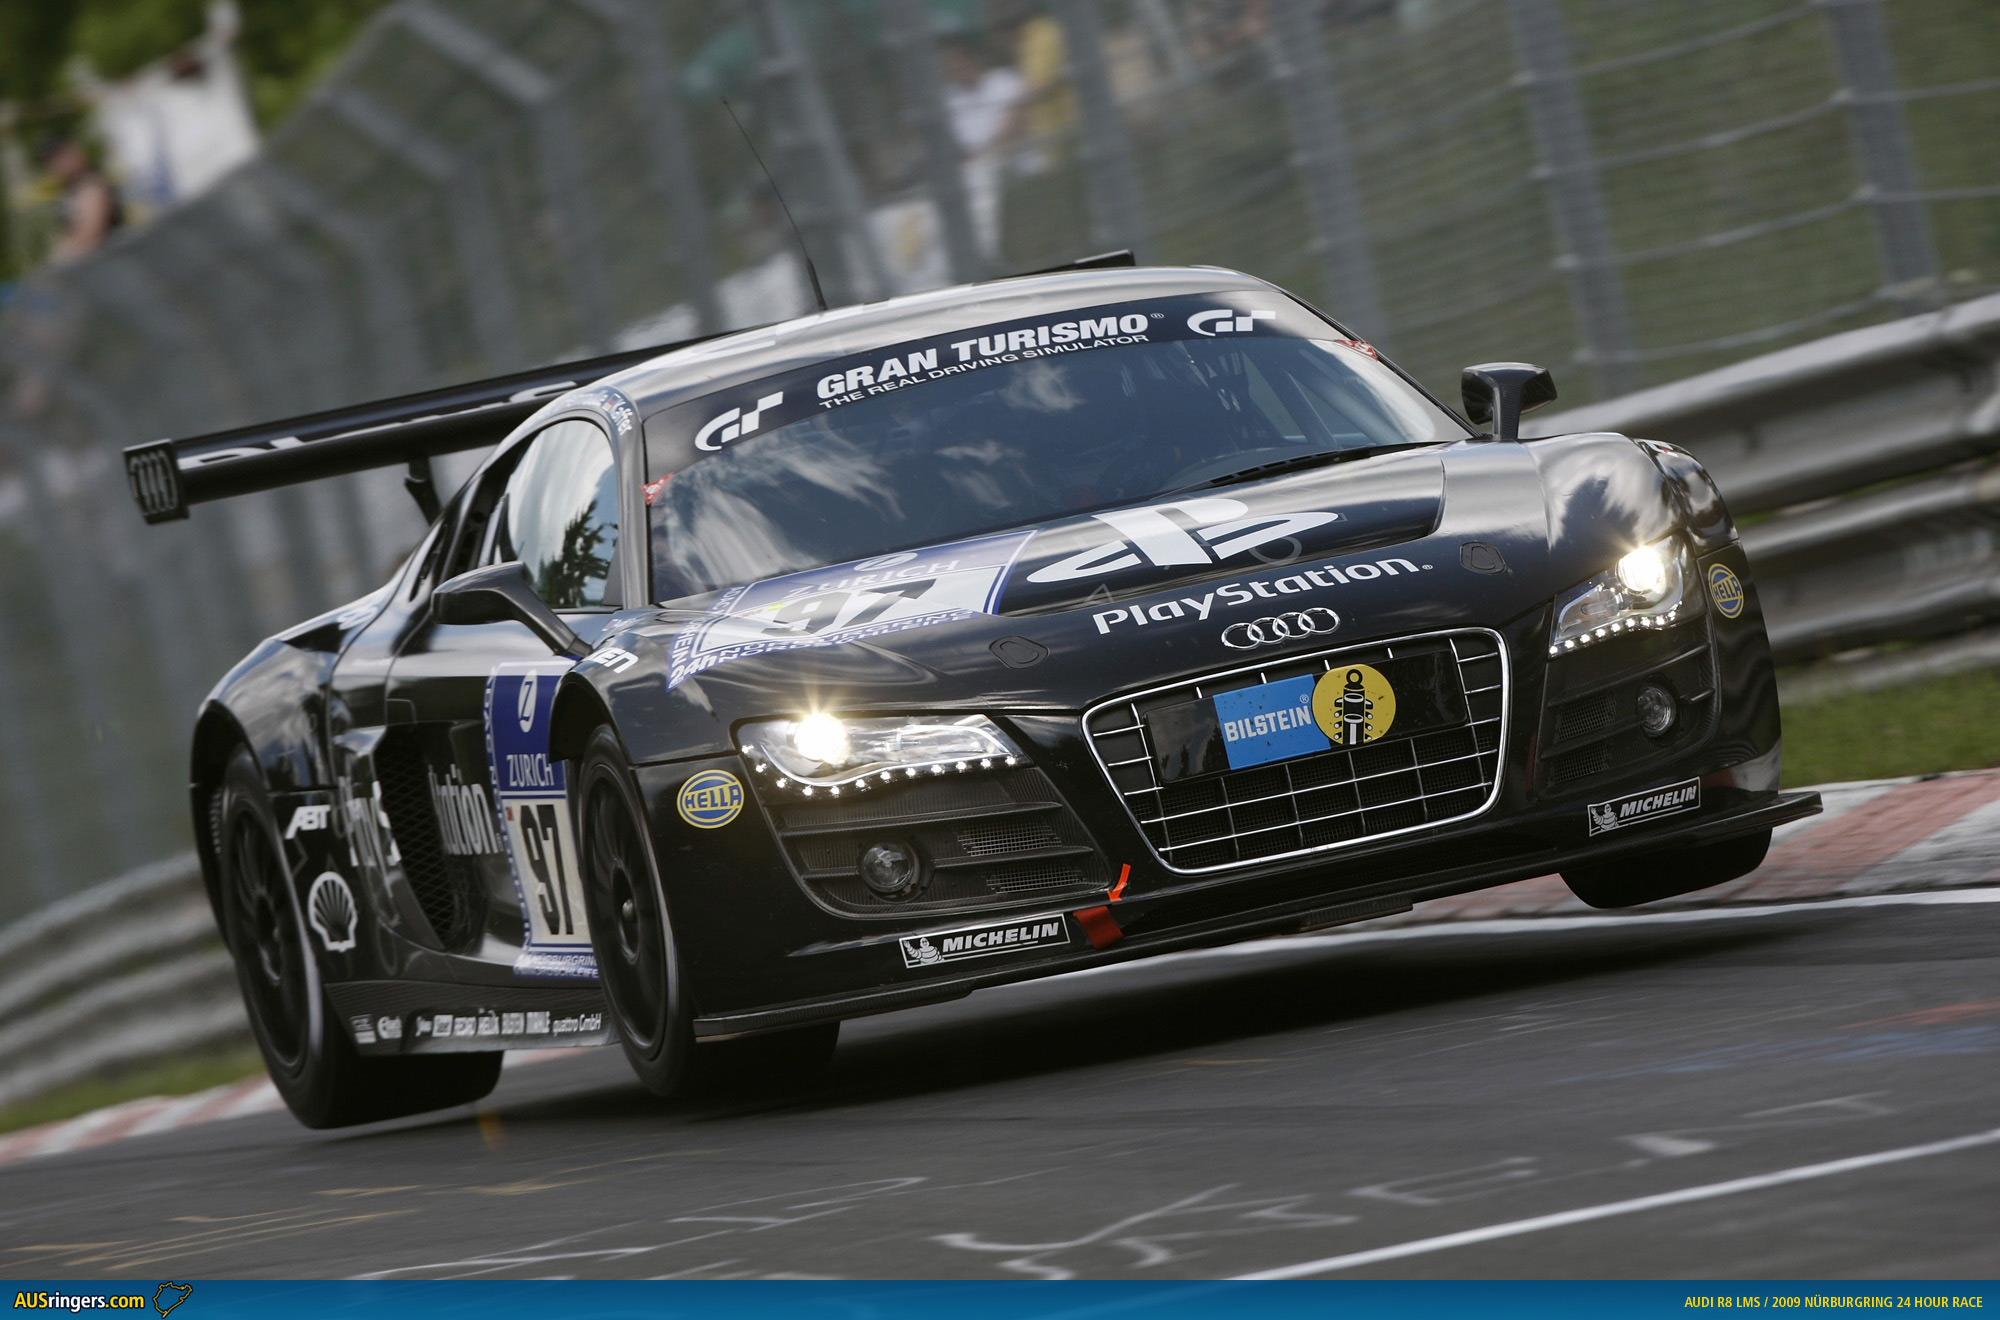 Audi R8 LMS Desktop Wallpaper Free